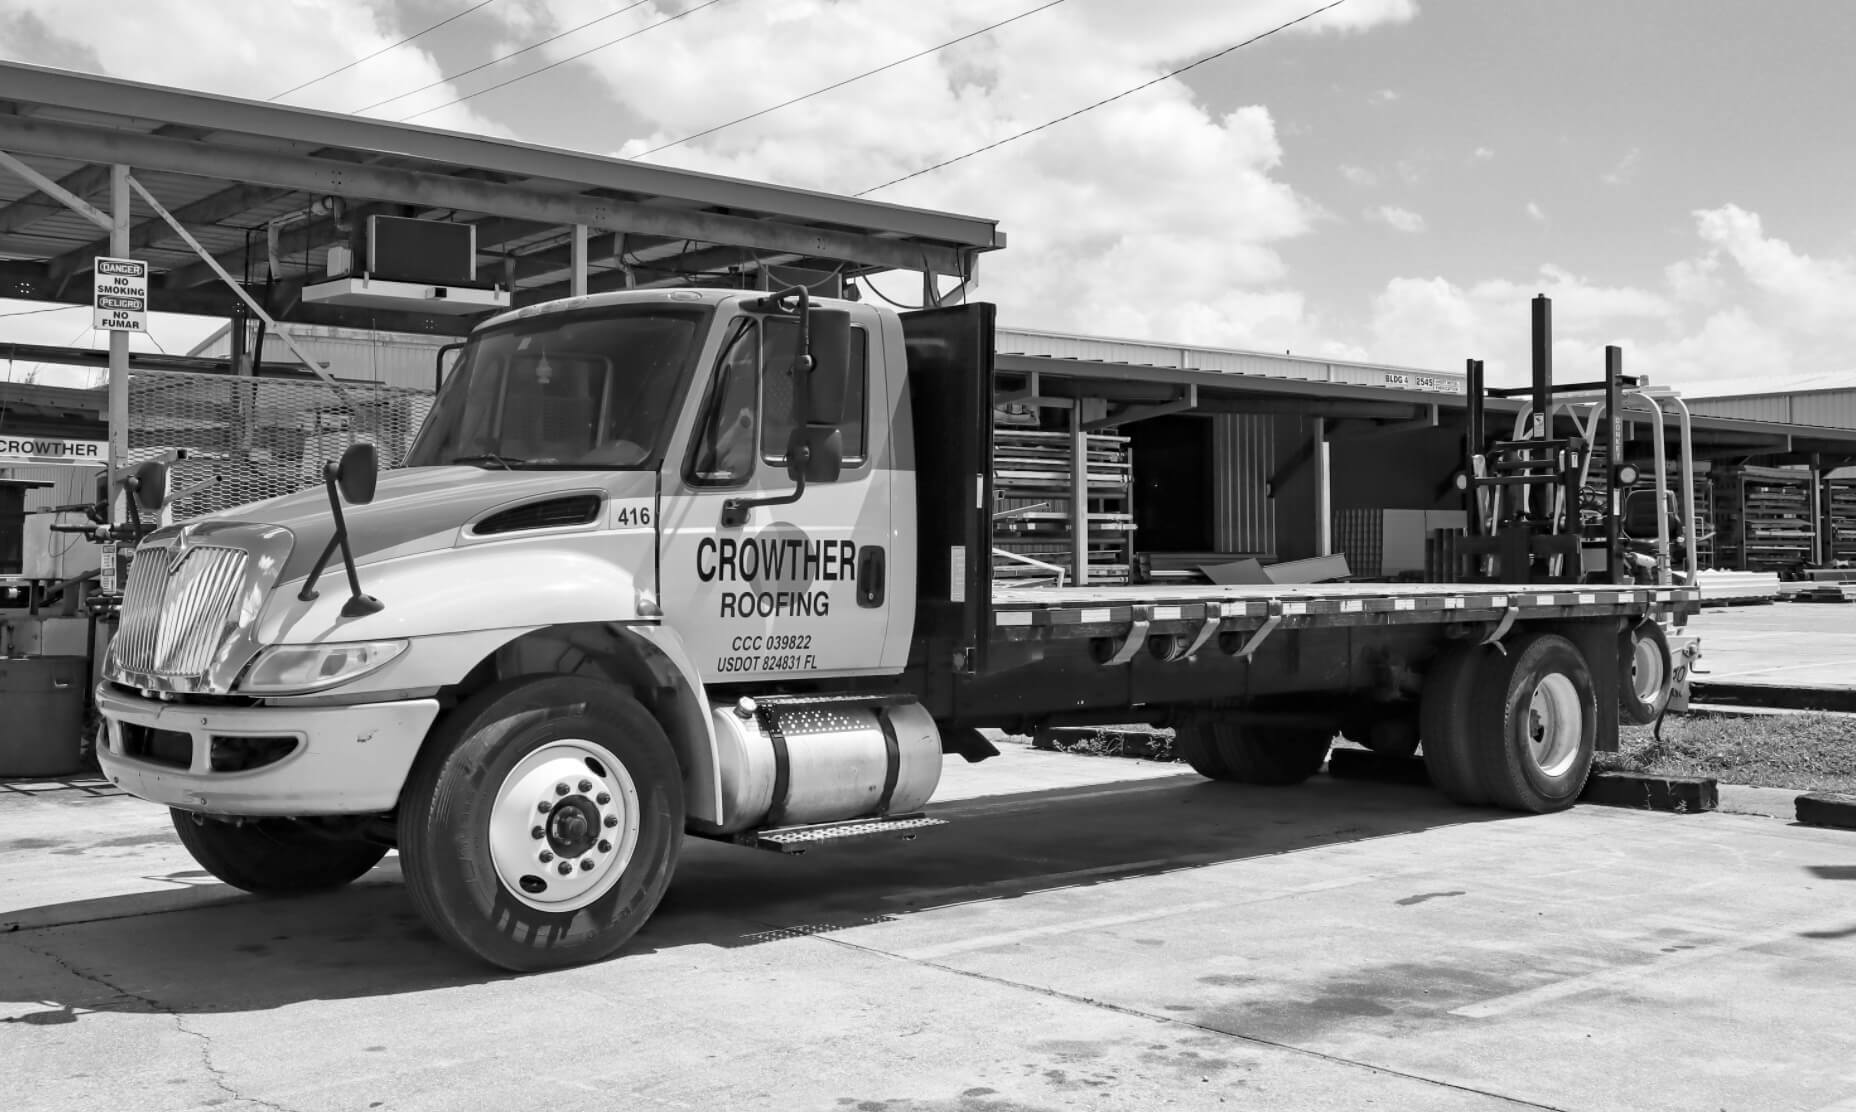 Crowther flatbed truck b&w